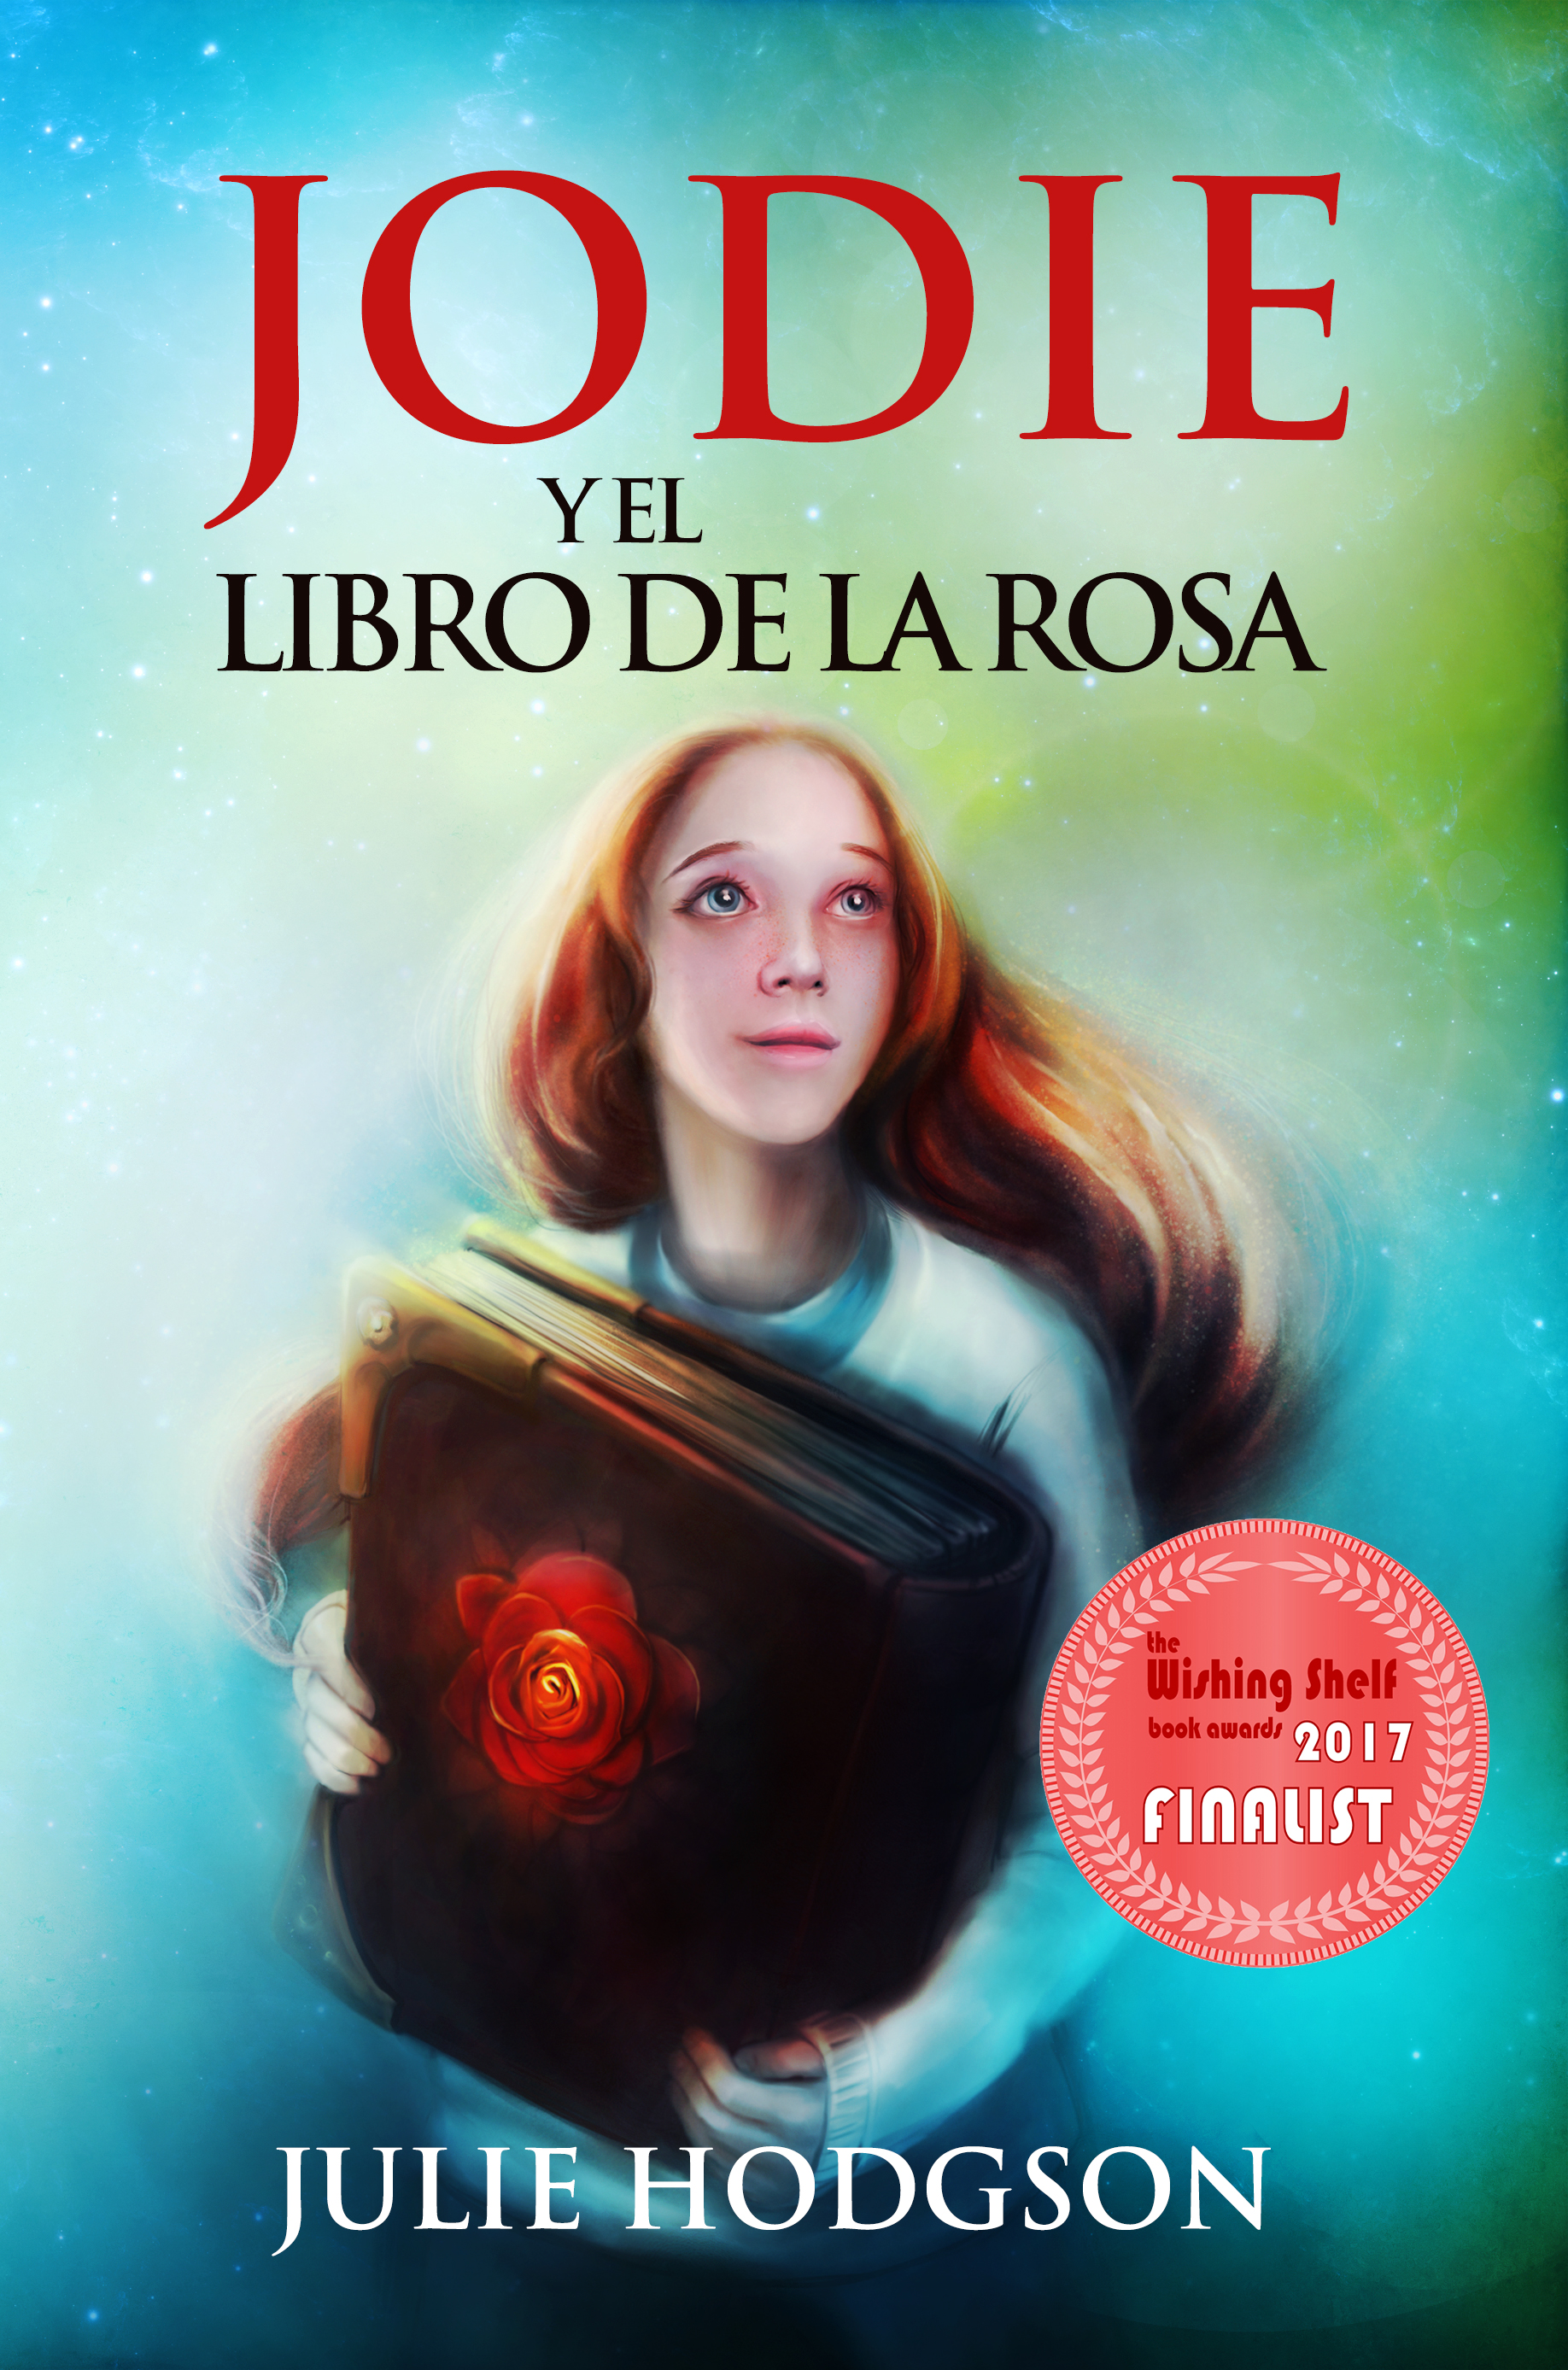 Jodie and the book of the rose